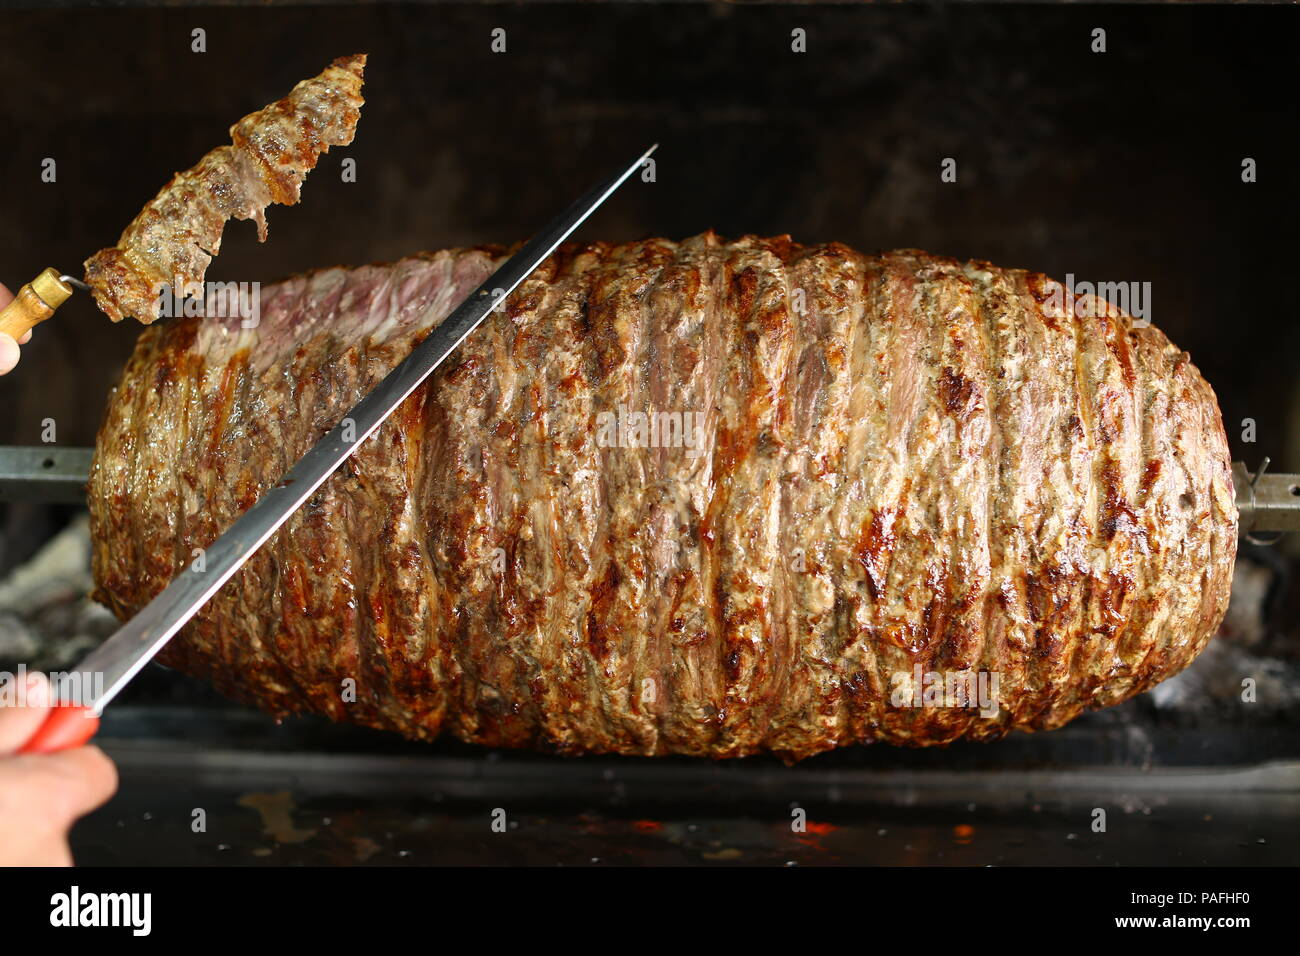 https www alamy com turkish cag kebab doner in wood fired oven image213014004 html